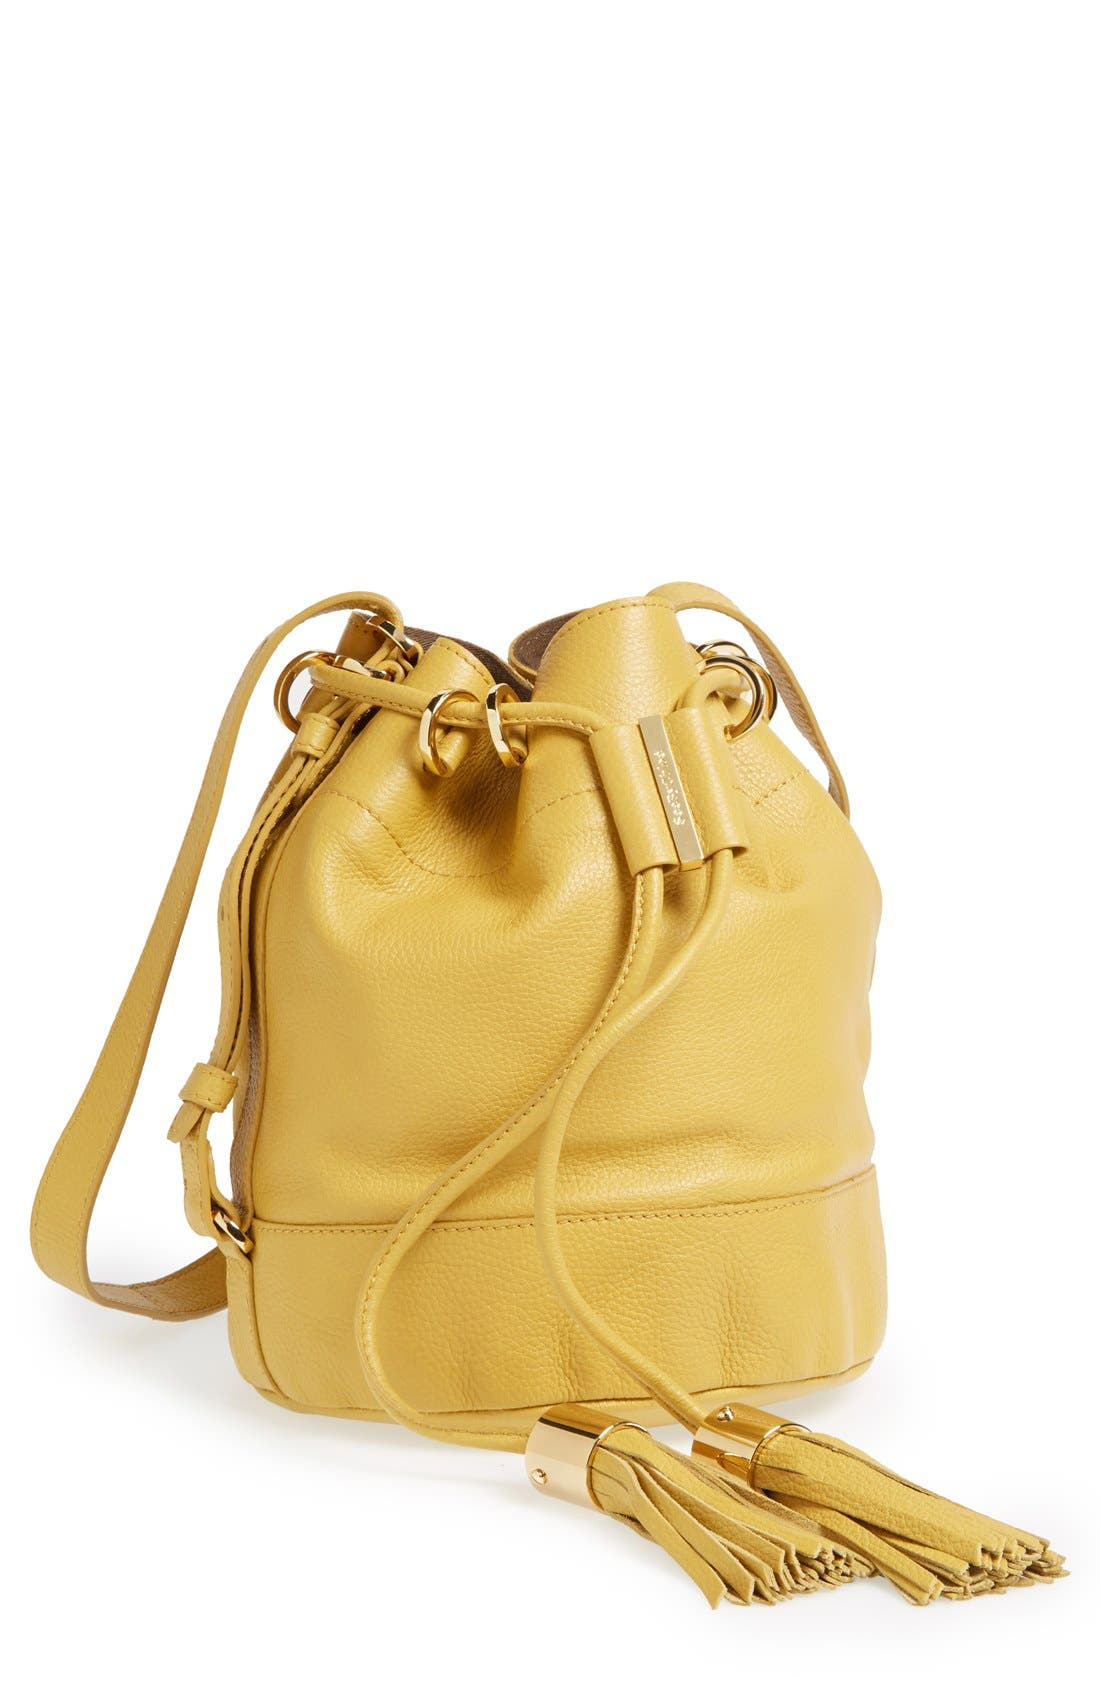 Main Image - See by Chloé 'Small Vicki' Leather Bucket Bag